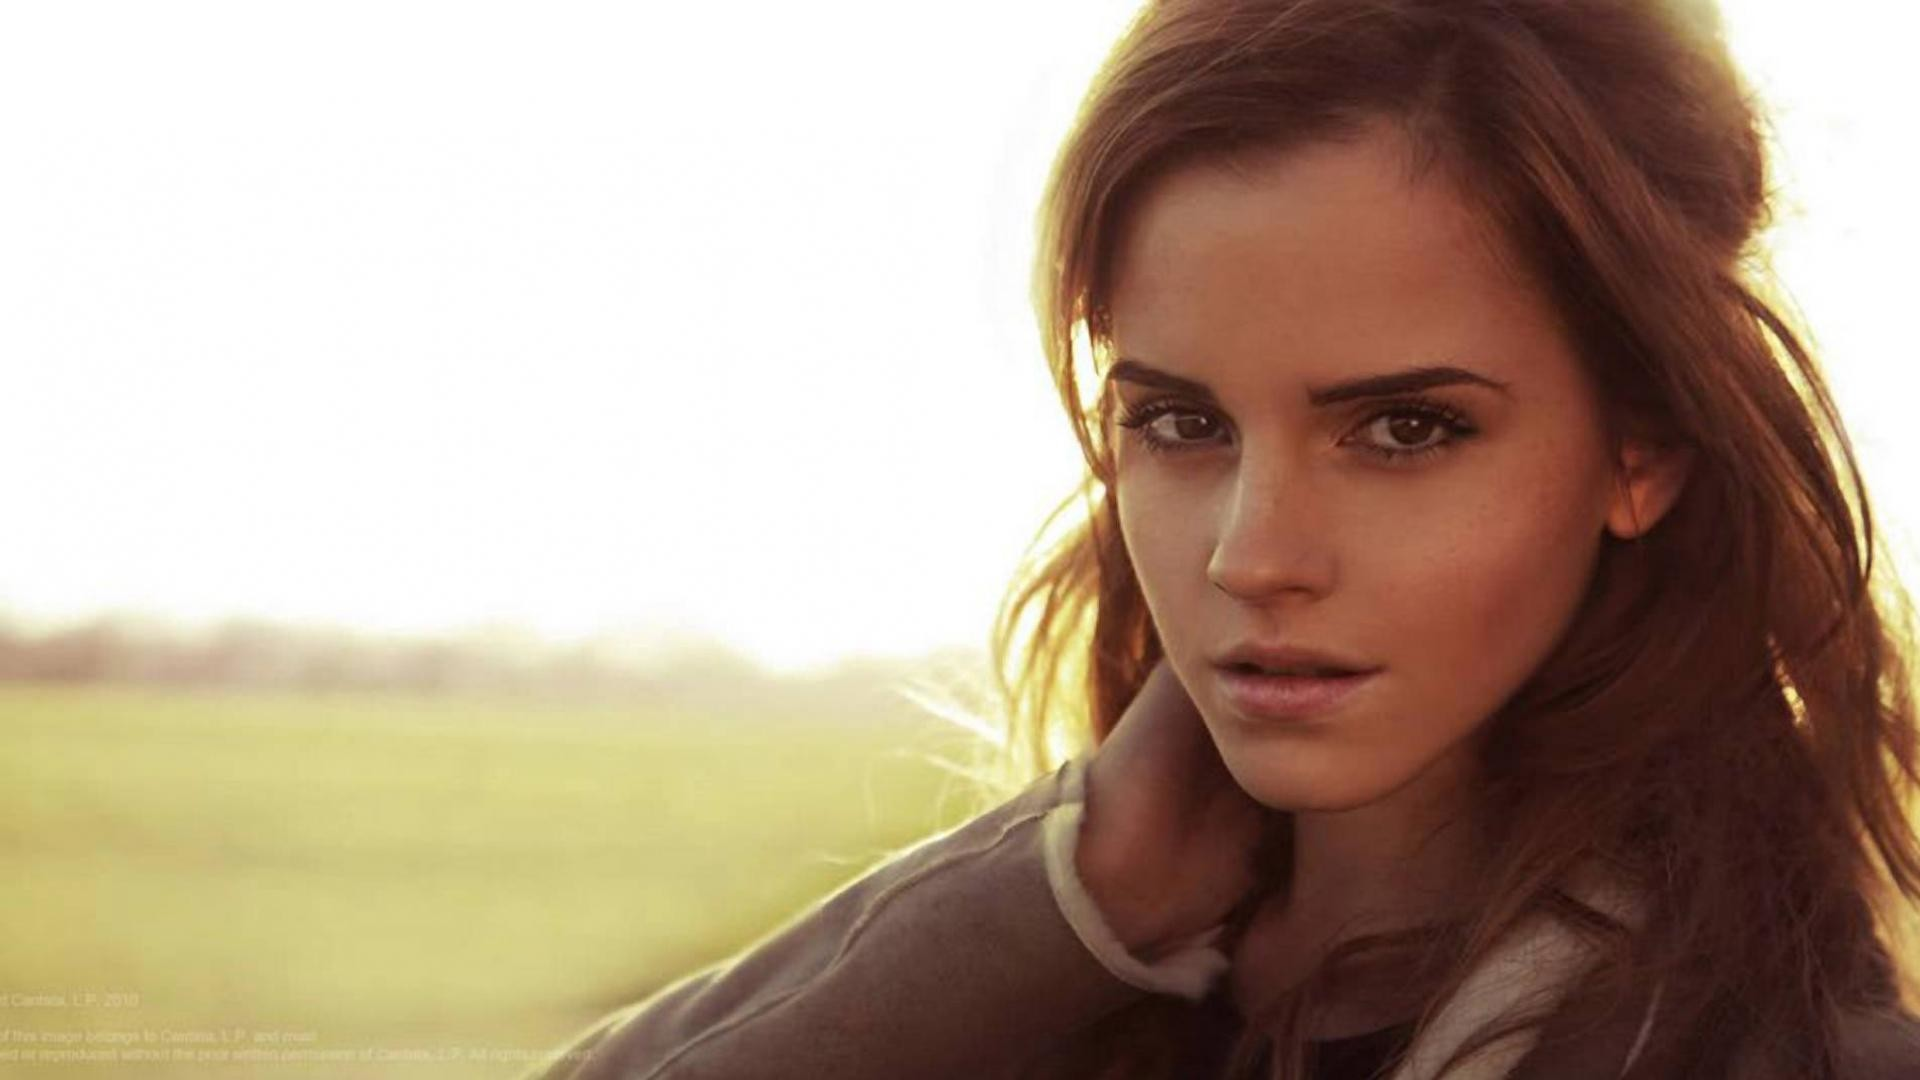 1920x1080 undefined-Emma-Watson-Pics-Adorable-wallpaper-wp2009983